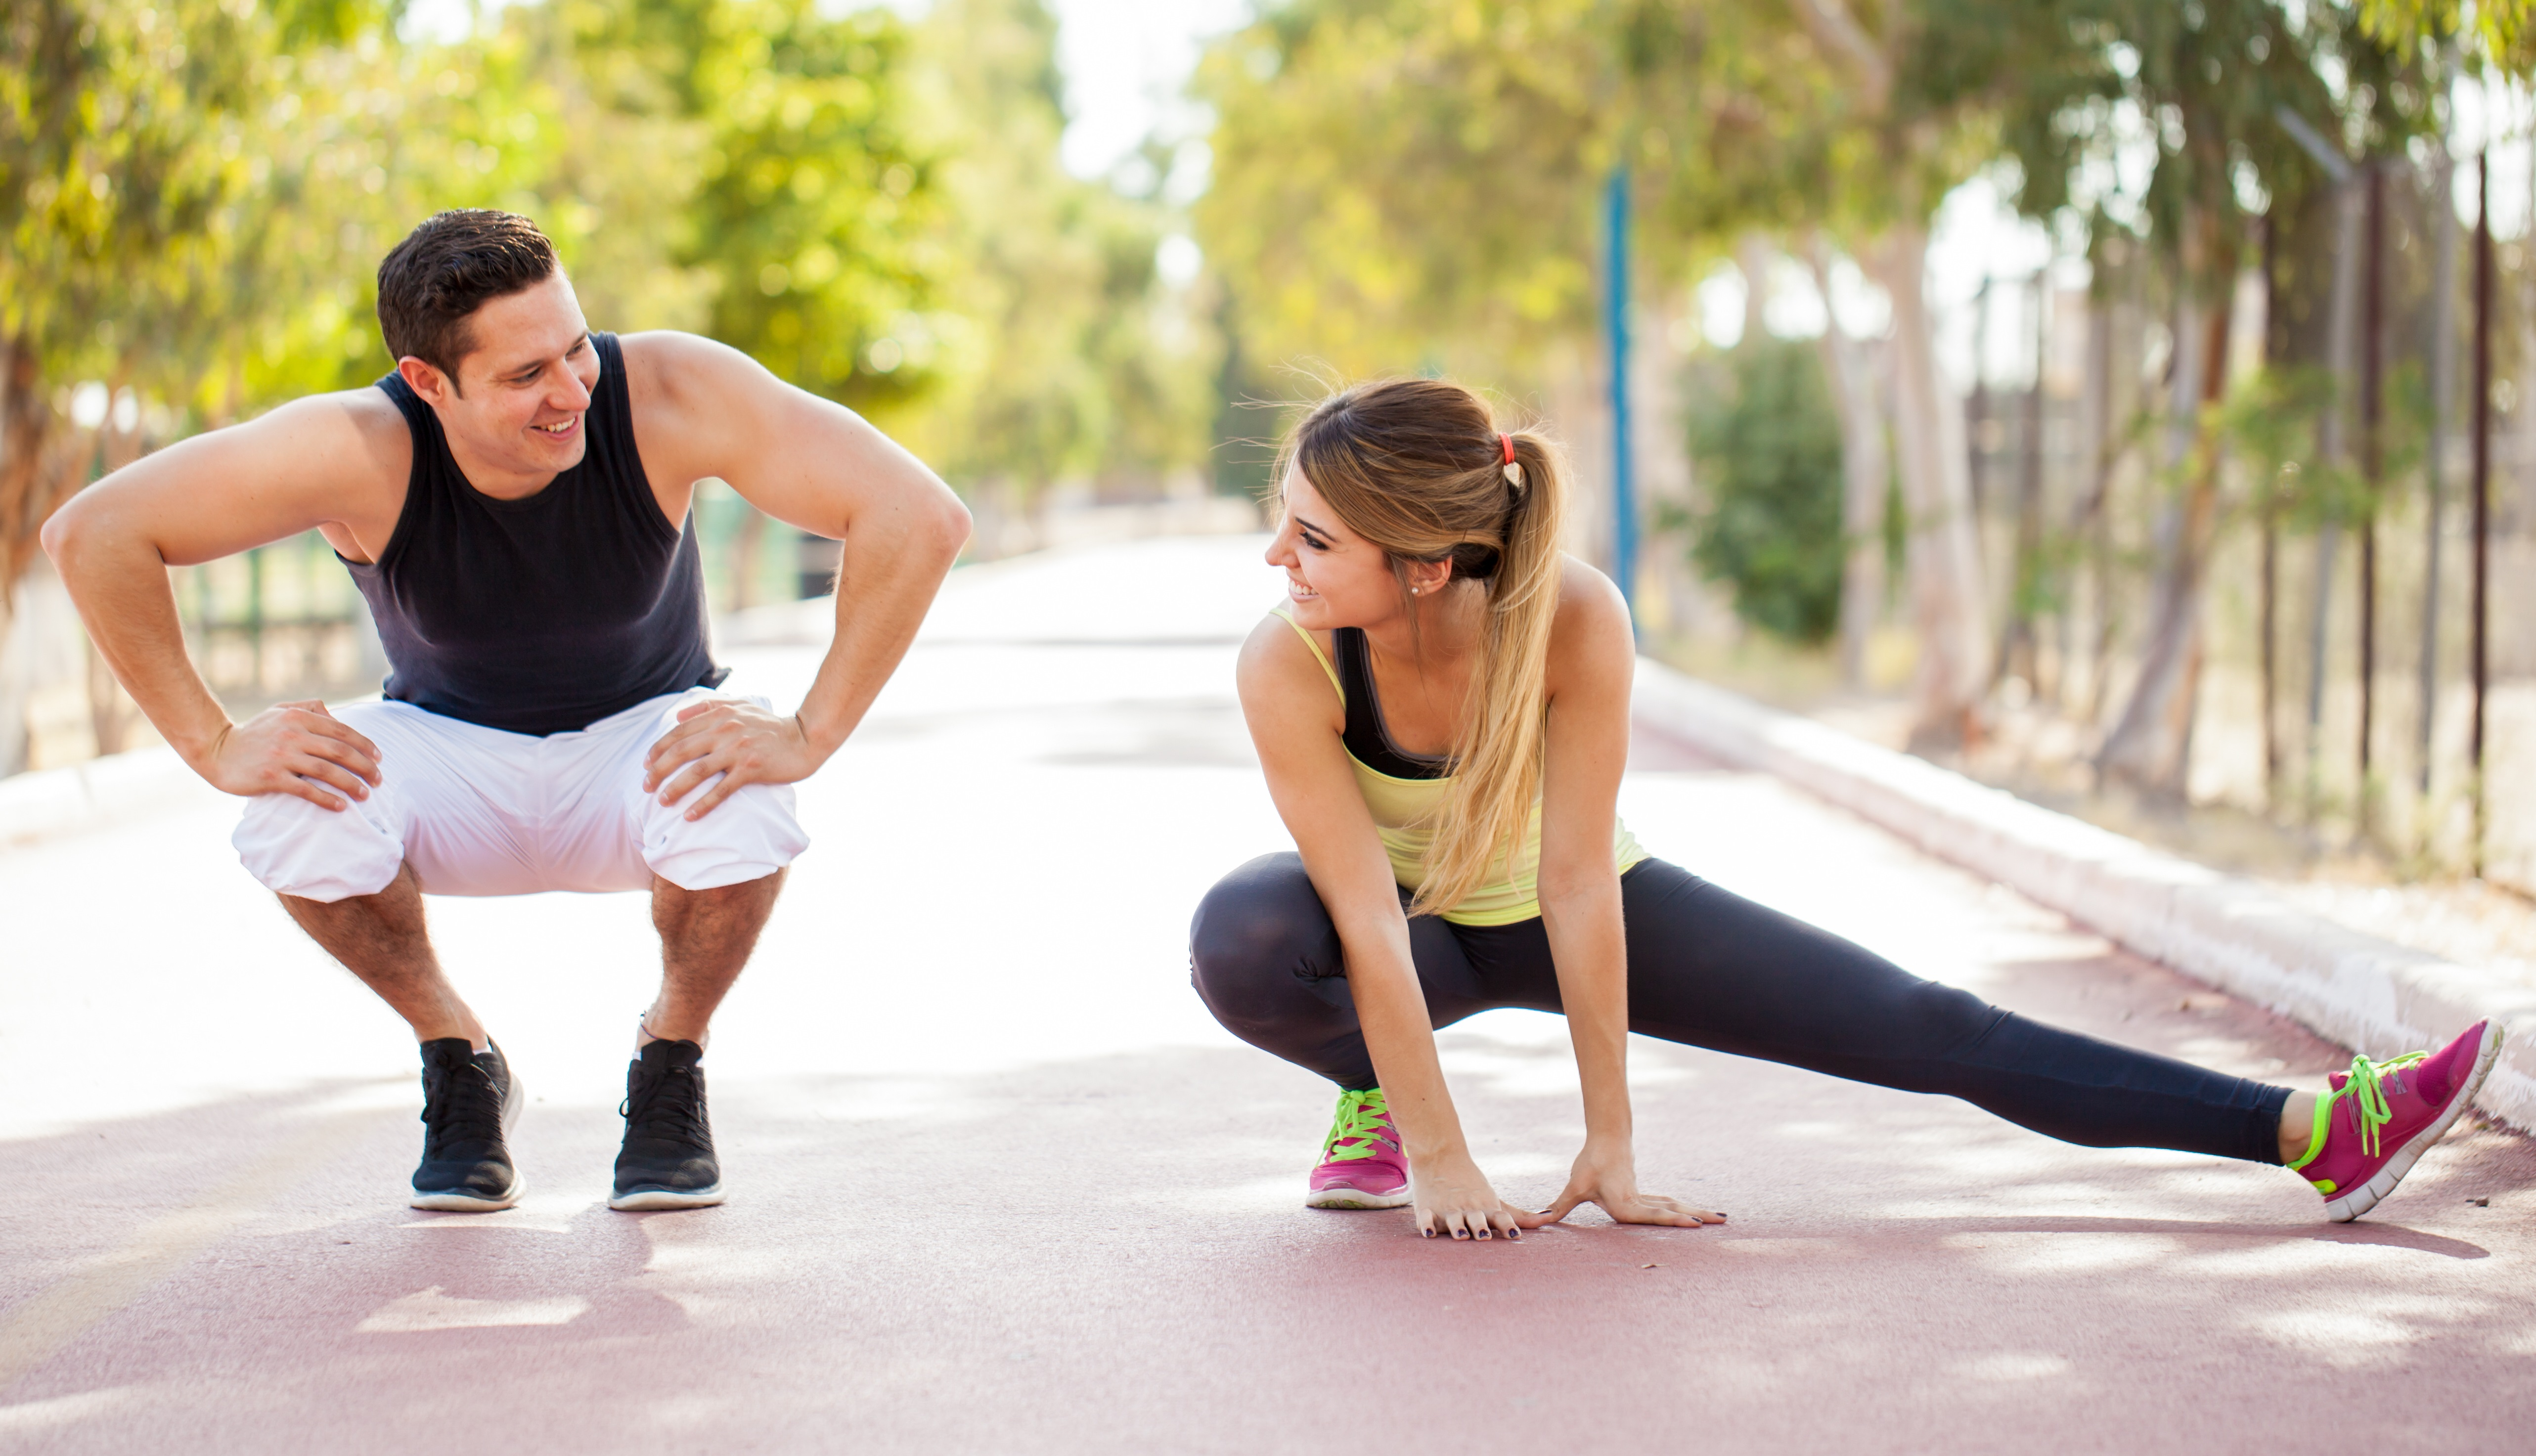 Working out together outdoors